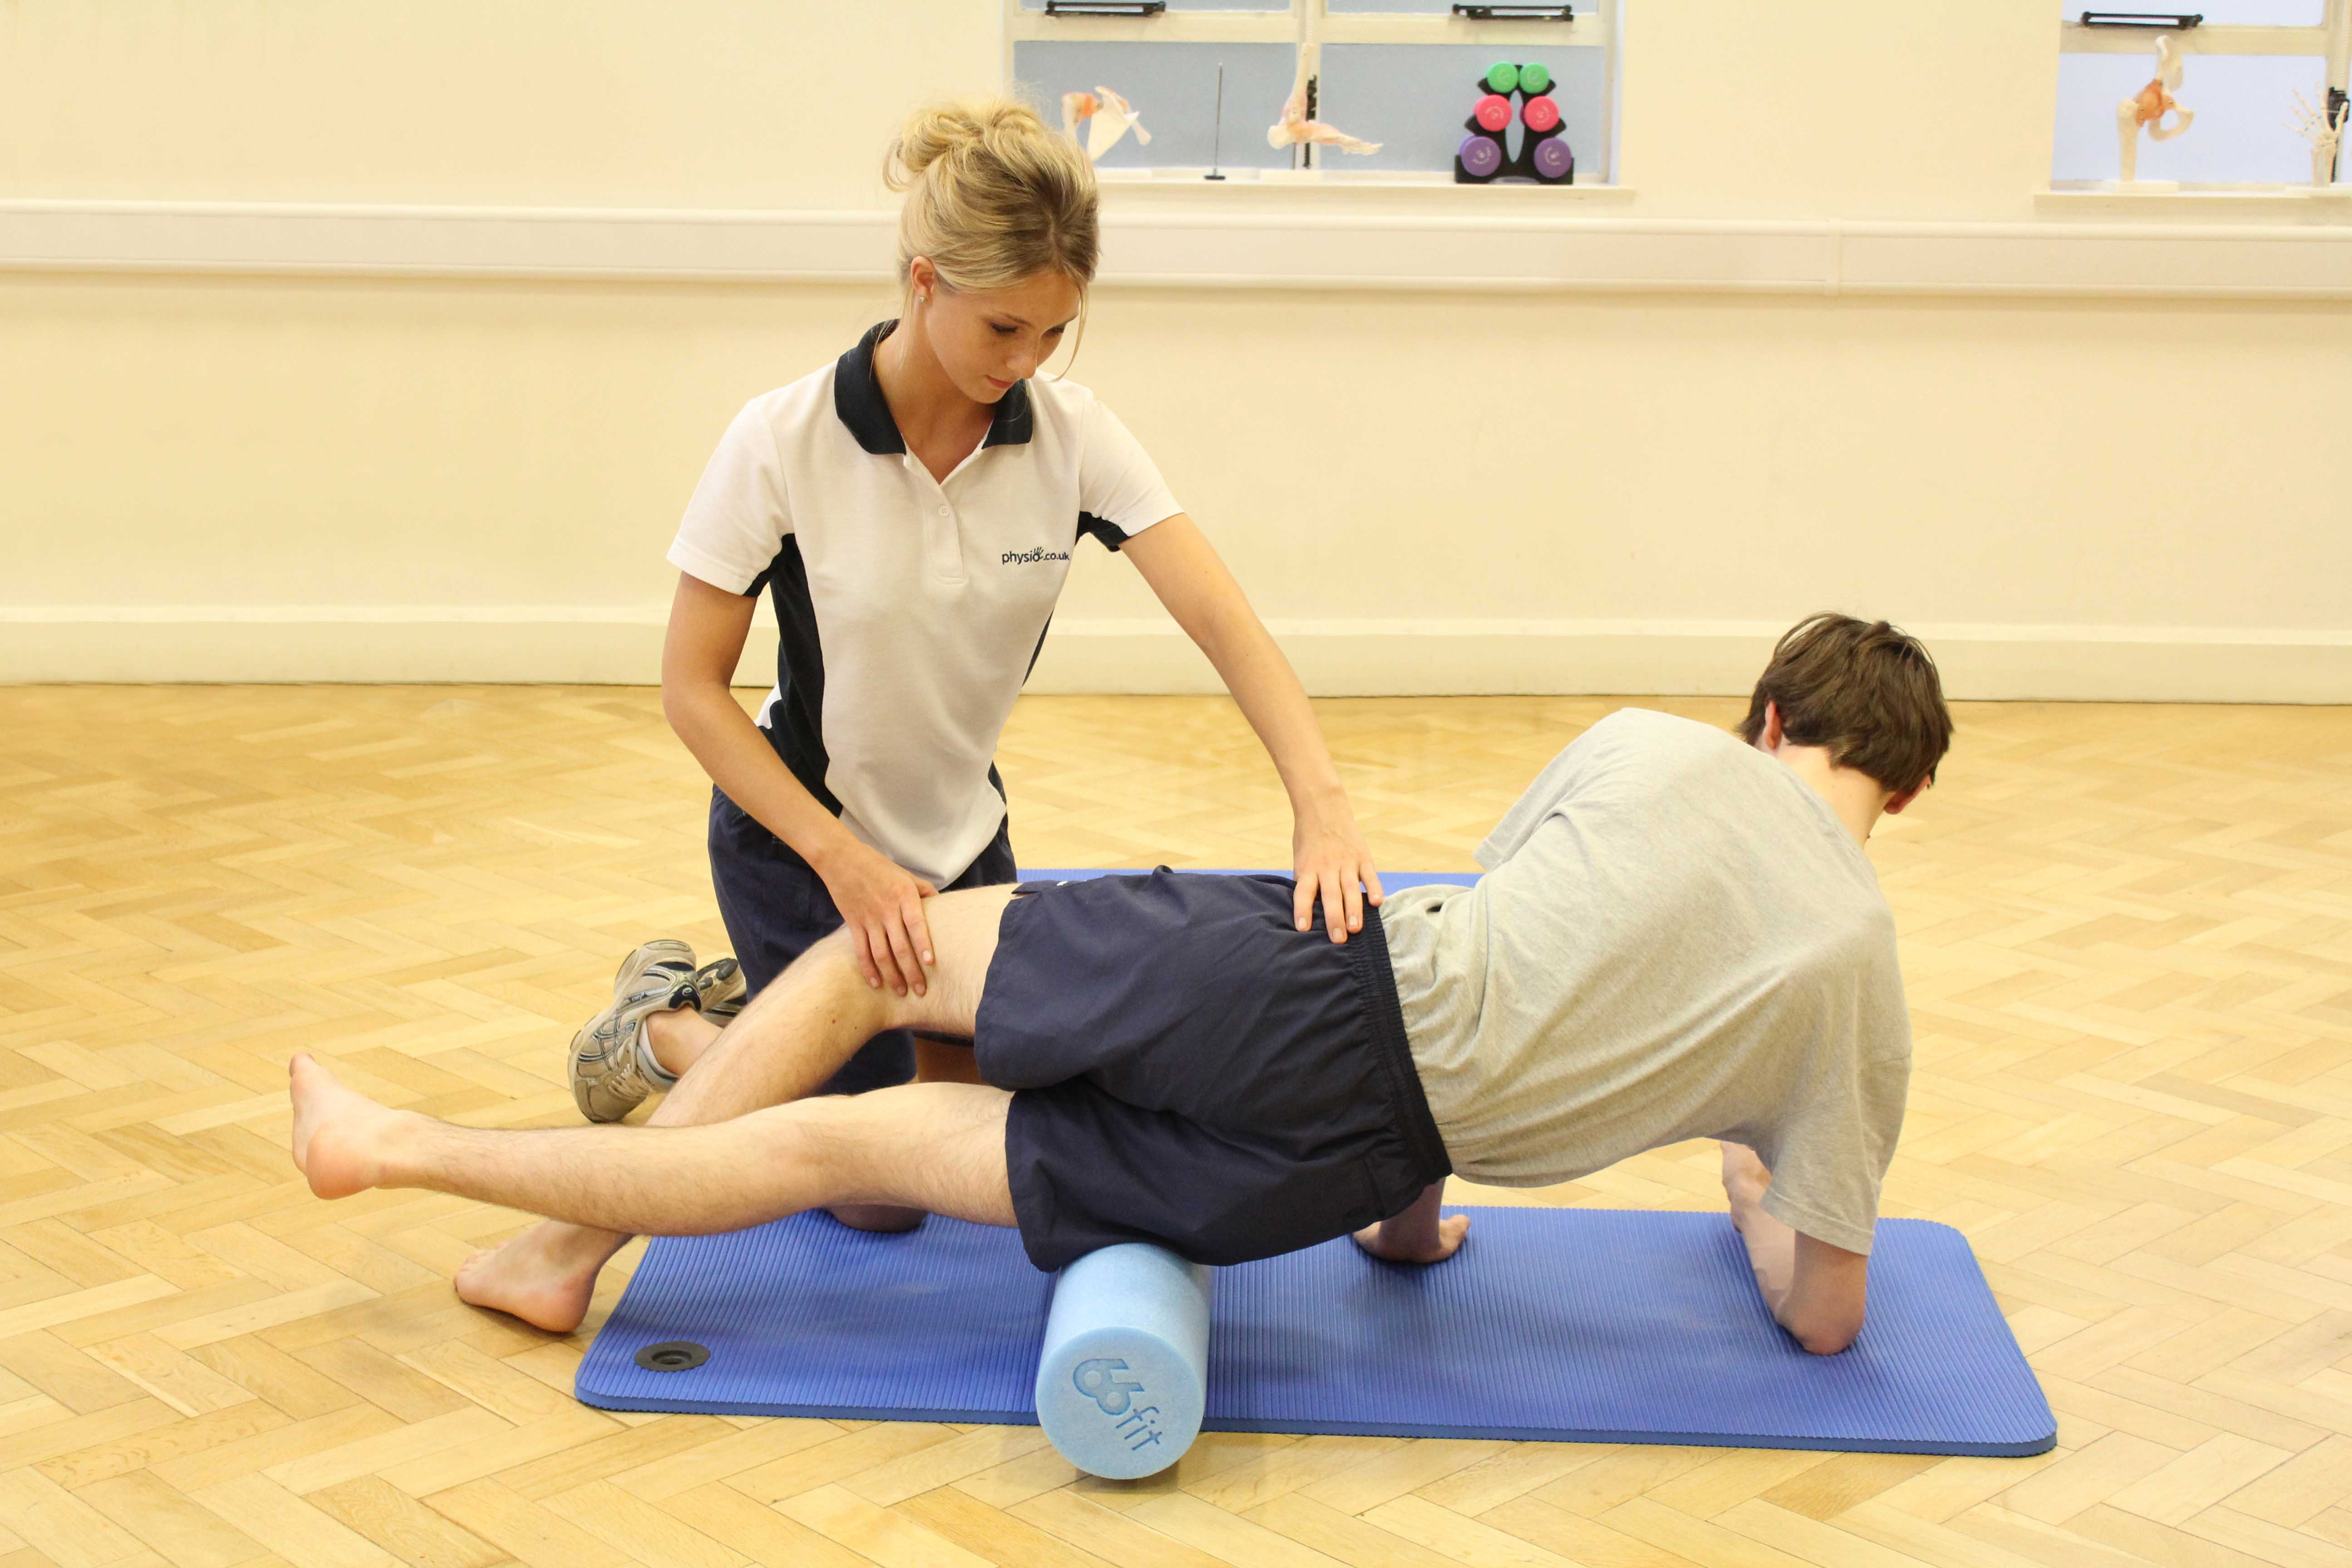 Active stretches and mobilisations of the hip and pelvis with supervision from a MSK therapist